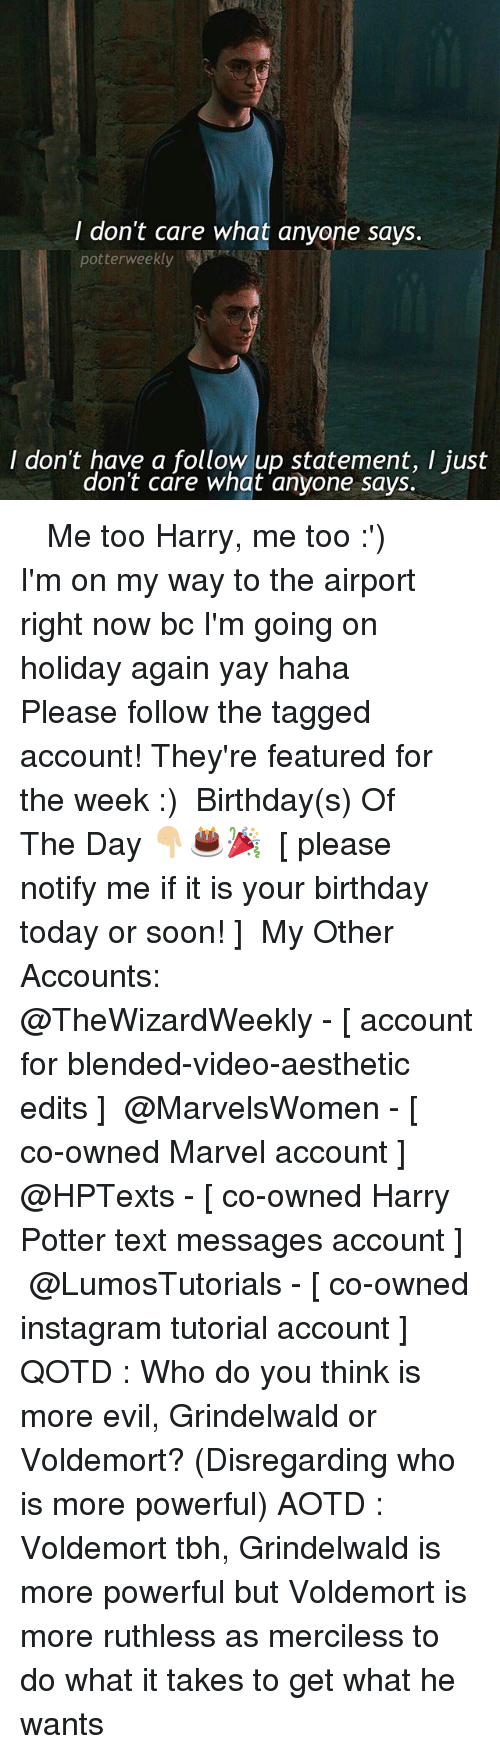 Birthday, Harry Potter, and Instagram: I don't care what anyone says.  potterweekly  I don't have a follow up statement, I just  don't care what anyone says. ✎✐✎ ↯ ⇢ Me too Harry, me too :') ↯ ⇢ I'm on my way to the airport right now bc I'm going on holiday again yay haha ↯ ⇢ Please follow the tagged account! They're featured for the week :) ✎✐✎ Birthday(s) Of The Day 👇🏼🎂🎉 ⇢ [ please notify me if it is your birthday today or soon! ] ✎✐✎ My Other Accounts: ⇢ @TheWizardWeekly - [ account for blended-video-aesthetic edits ] ⇢ @MarvelsWomen - [ co-owned Marvel account ] ⇢ @HPTexts - [ co-owned Harry Potter text messages account ] ⇢ @LumosTutorials - [ co-owned instagram tutorial account ] ✎✐✎ QOTD : Who do you think is more evil, Grindelwald or Voldemort? (Disregarding who is more powerful) AOTD : Voldemort tbh, Grindelwald is more powerful but Voldemort is more ruthless as merciless to do what it takes to get what he wants